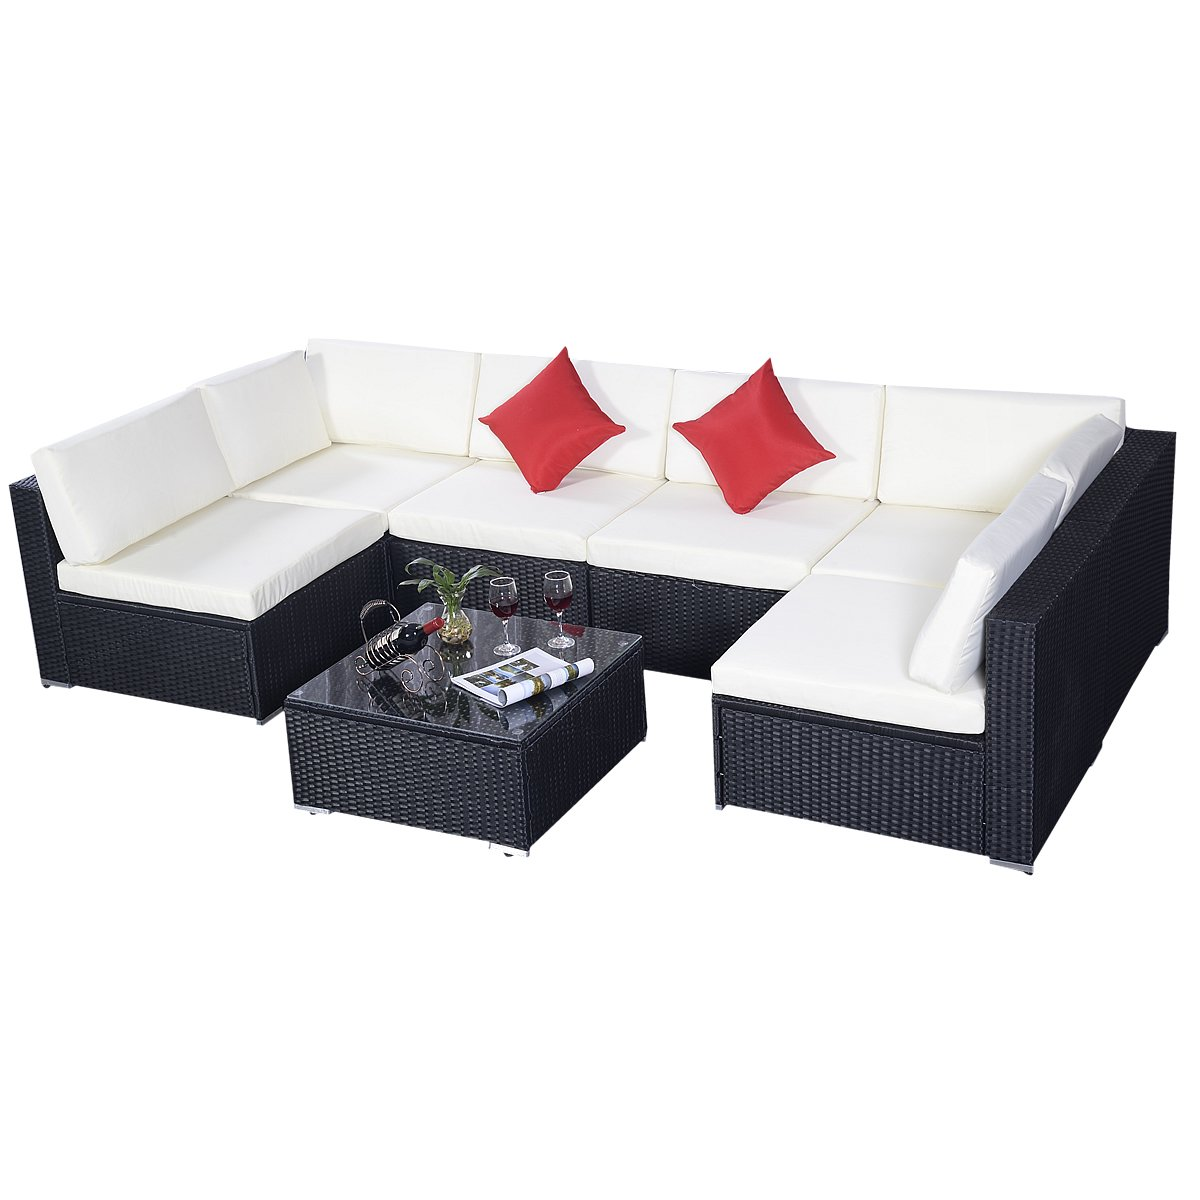 poly rattan set gartenm bel lounge polyrattan sitzgruppe rattanm bel garnitur garten 7er set. Black Bedroom Furniture Sets. Home Design Ideas